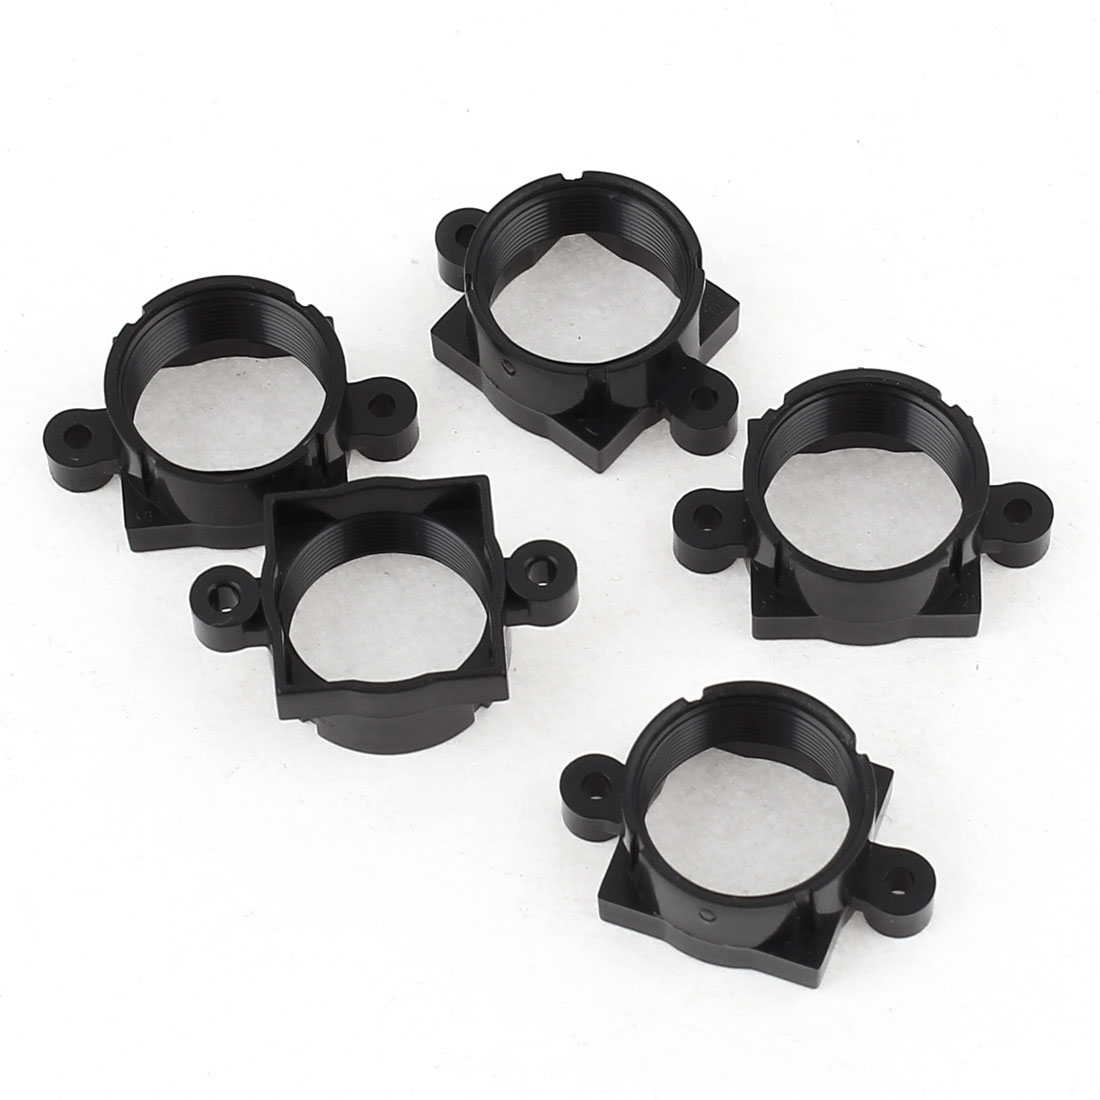 5 Pcs HD24 M12 CCTV Camera CCD Lens Mount Holder 18mm Spacing M12